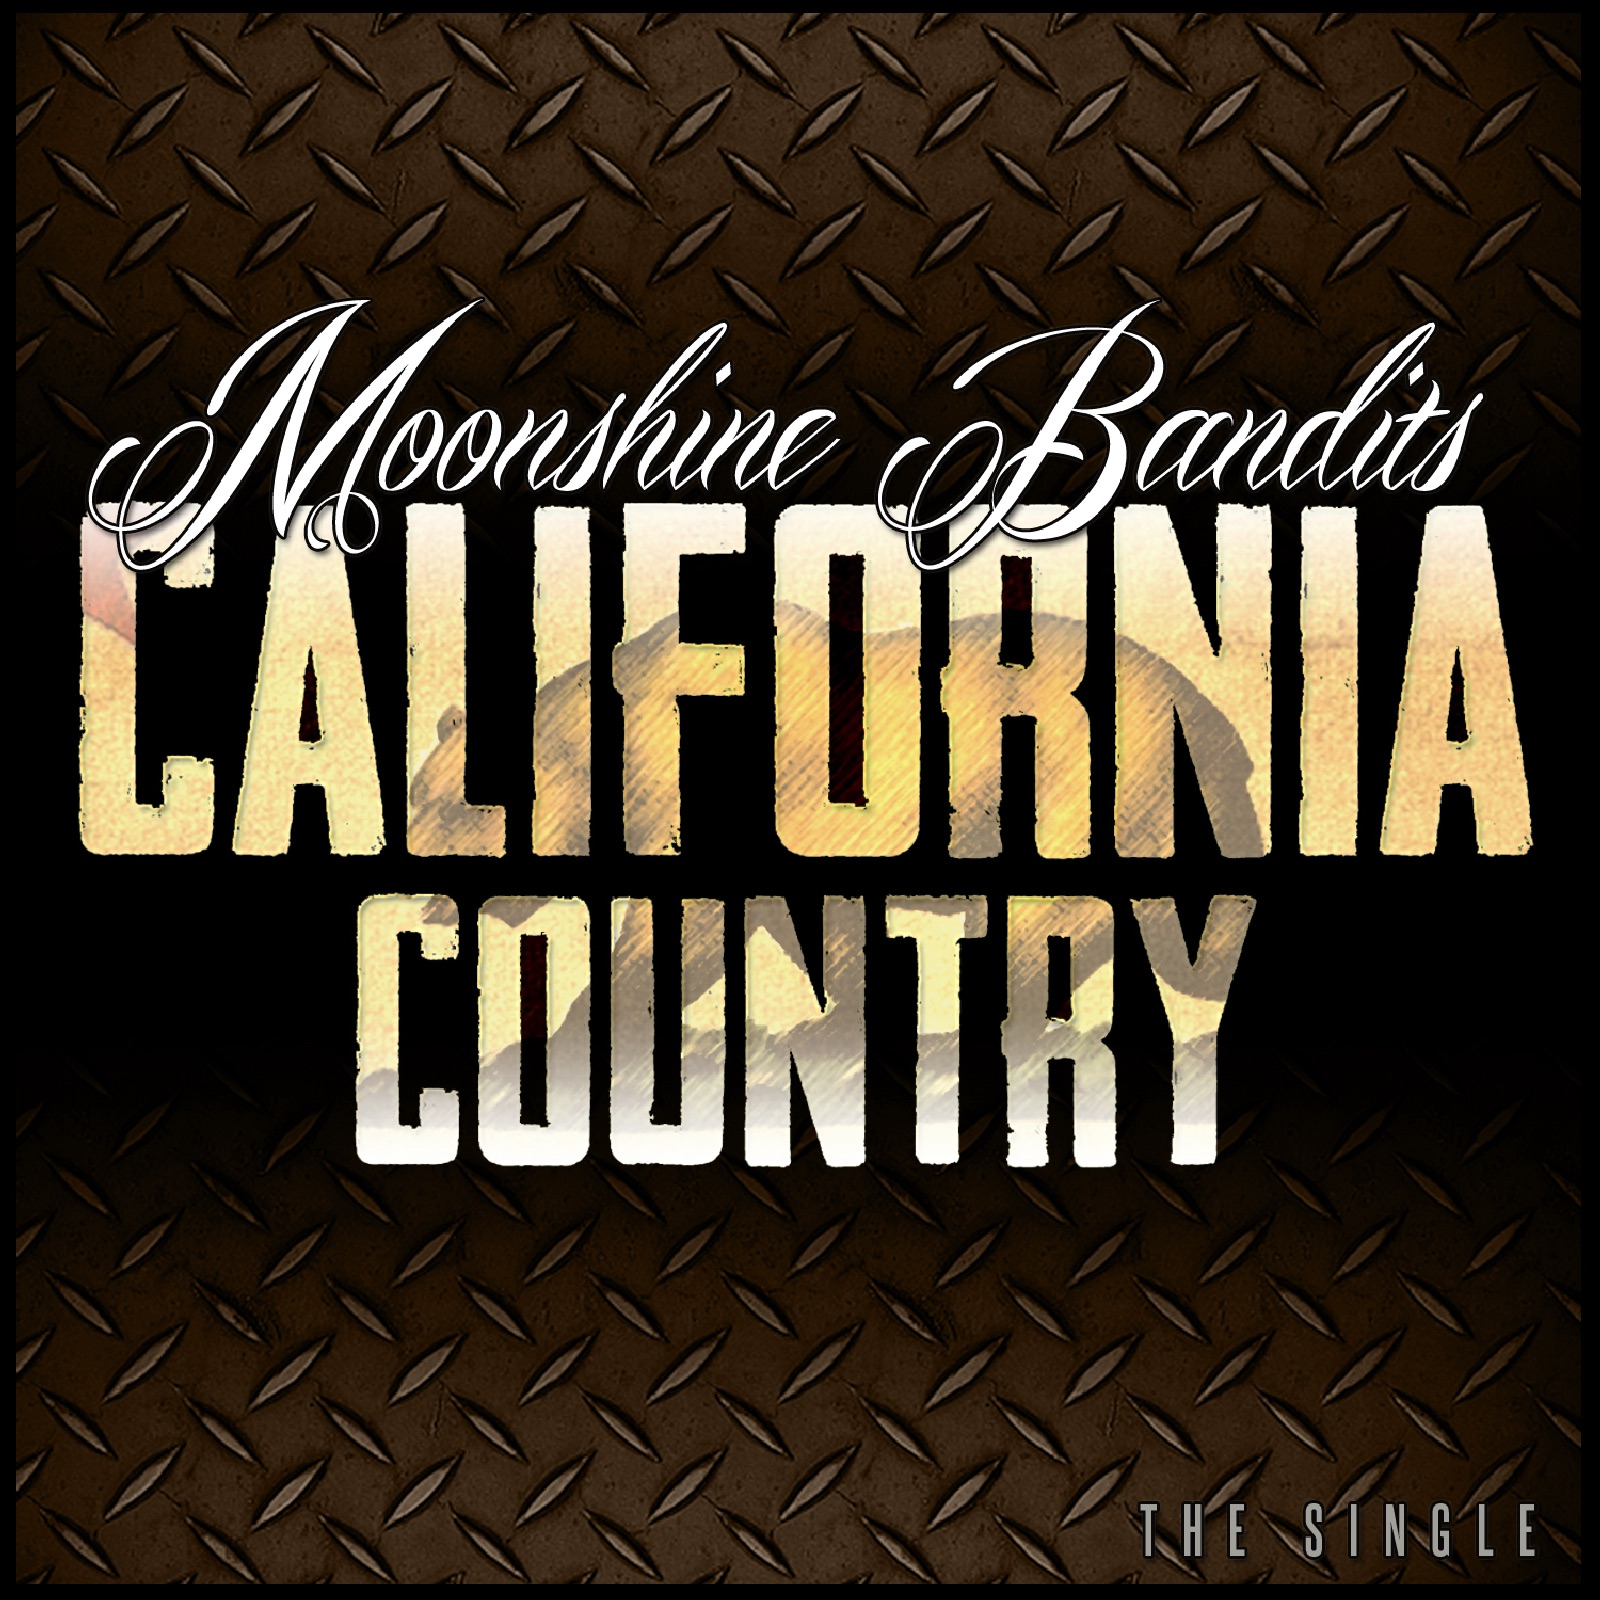 Download Free Moonshine Bandits Mp3 Downloads